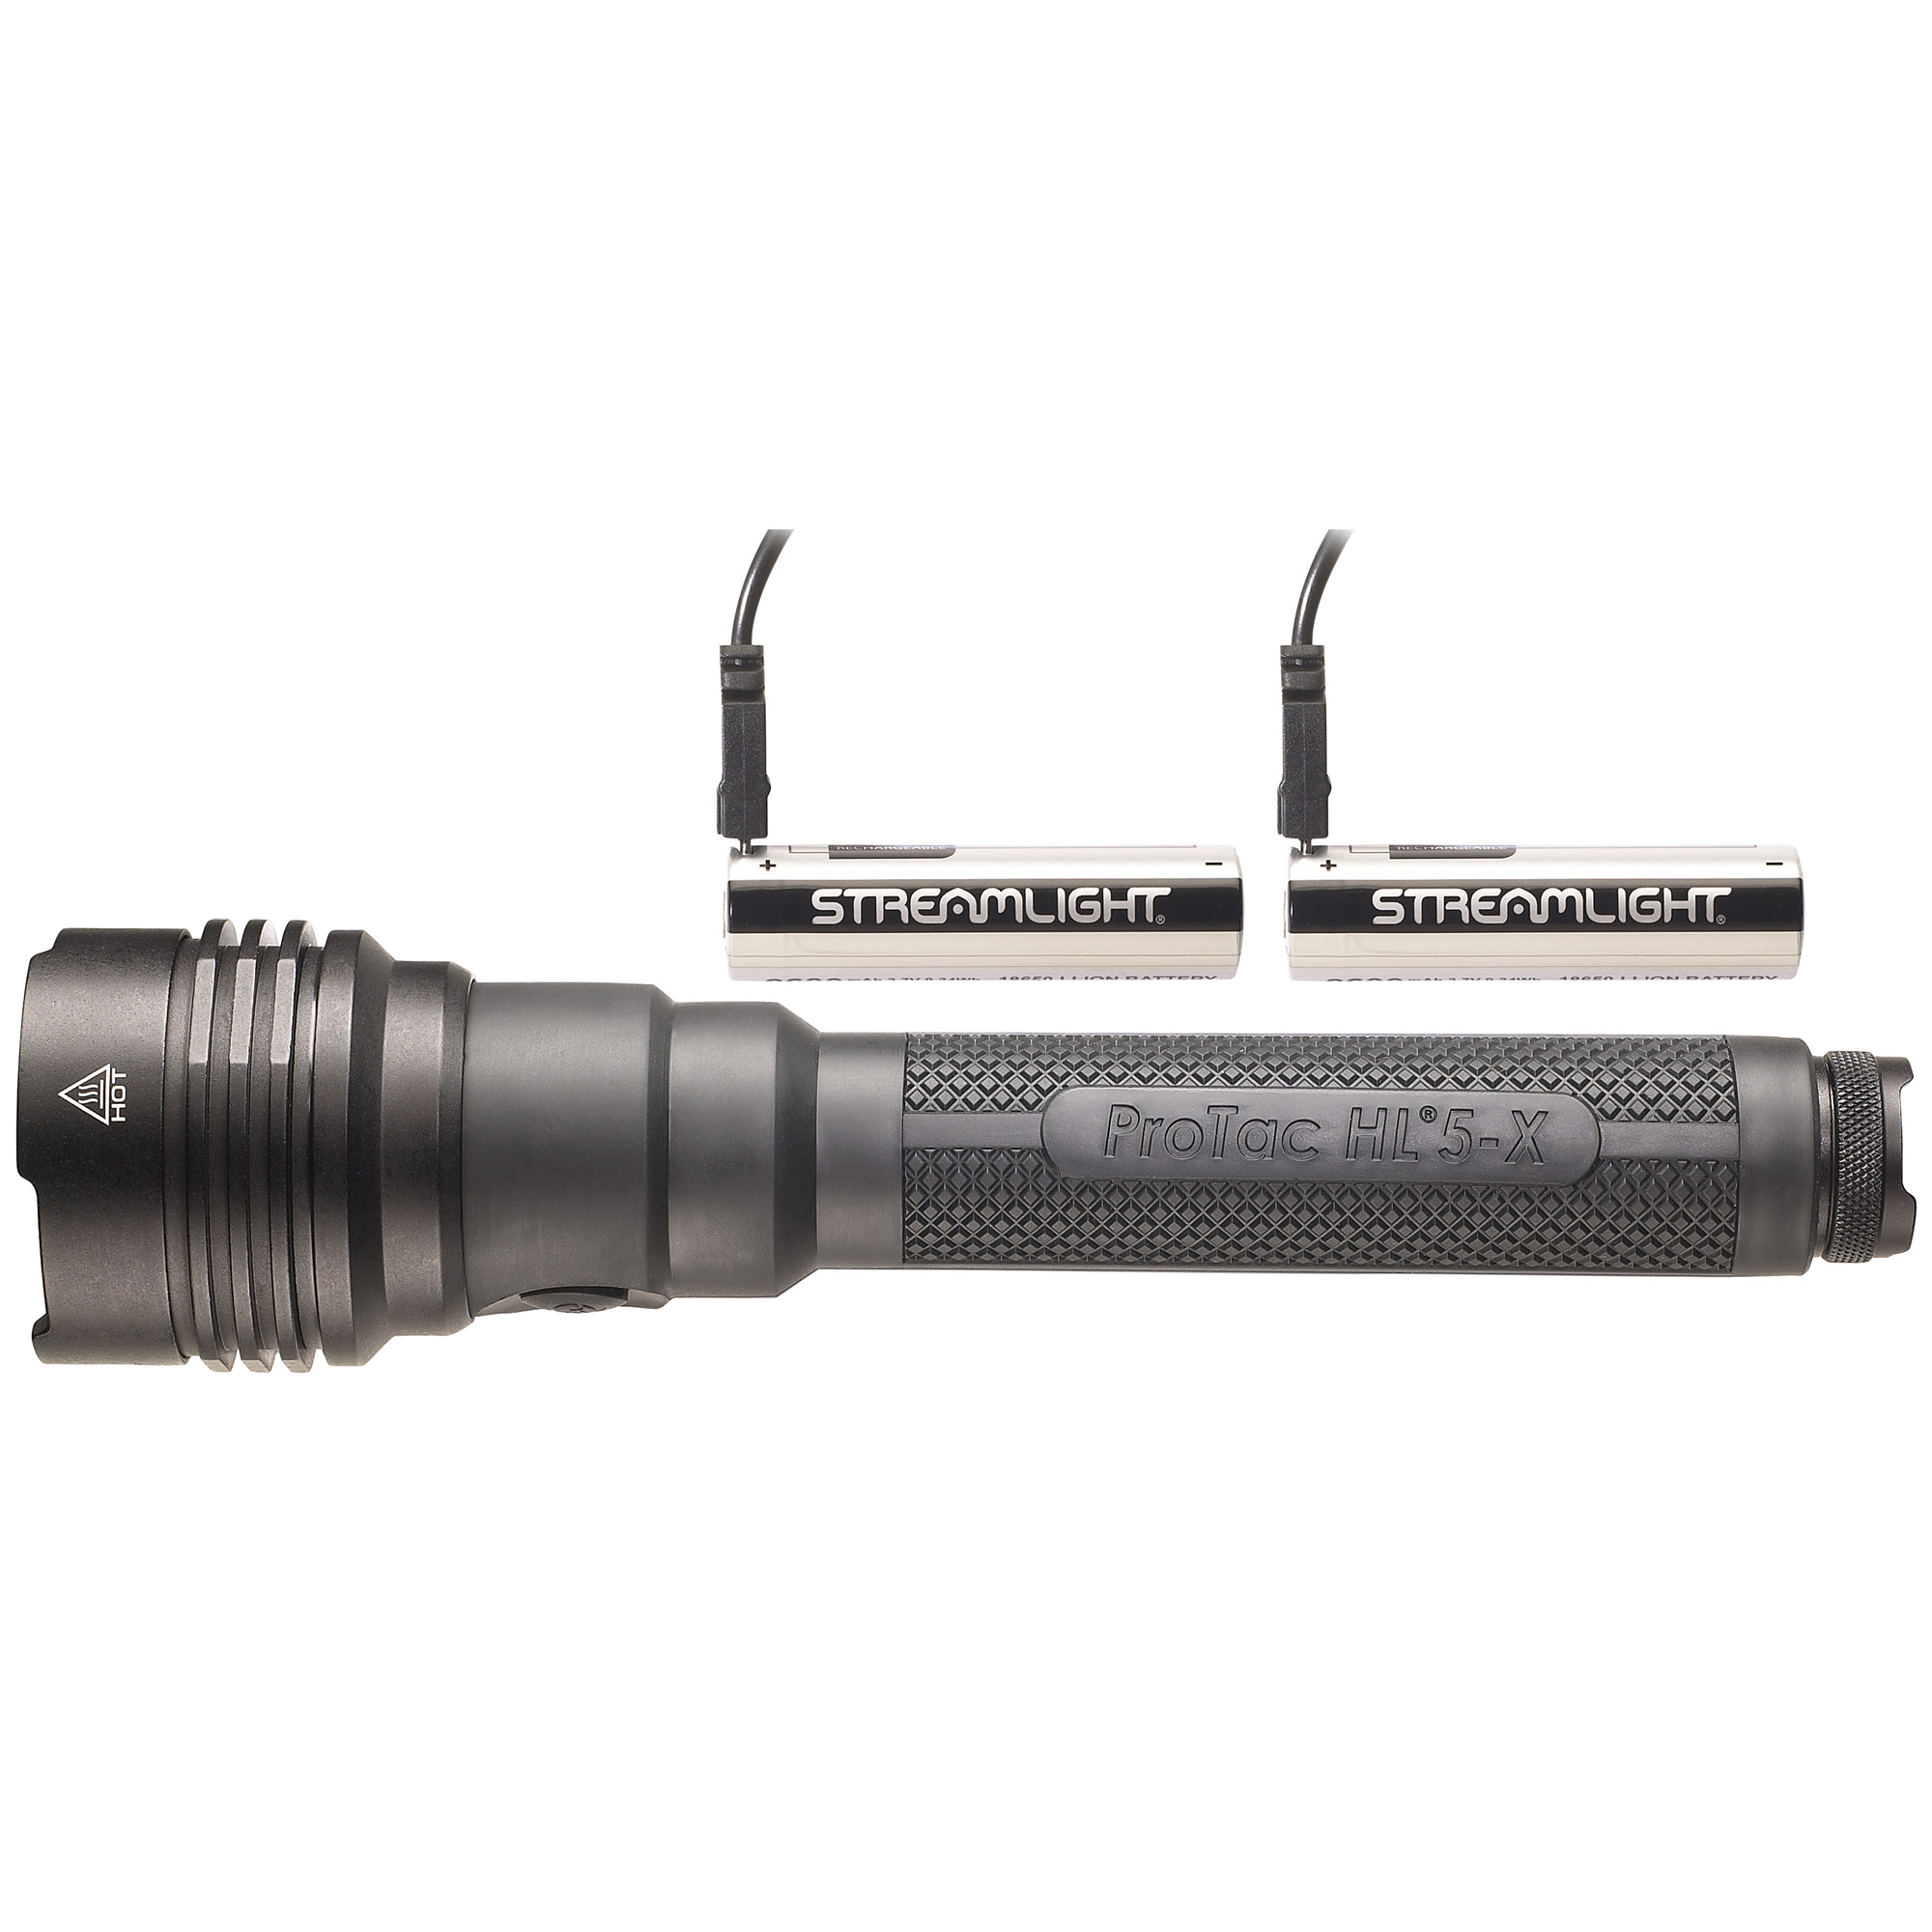 The ProTac HL 5-X USB is a complete rechargeable system that includes two of Streamlight's new 18650 USB batteries with an integrated USB charge port.